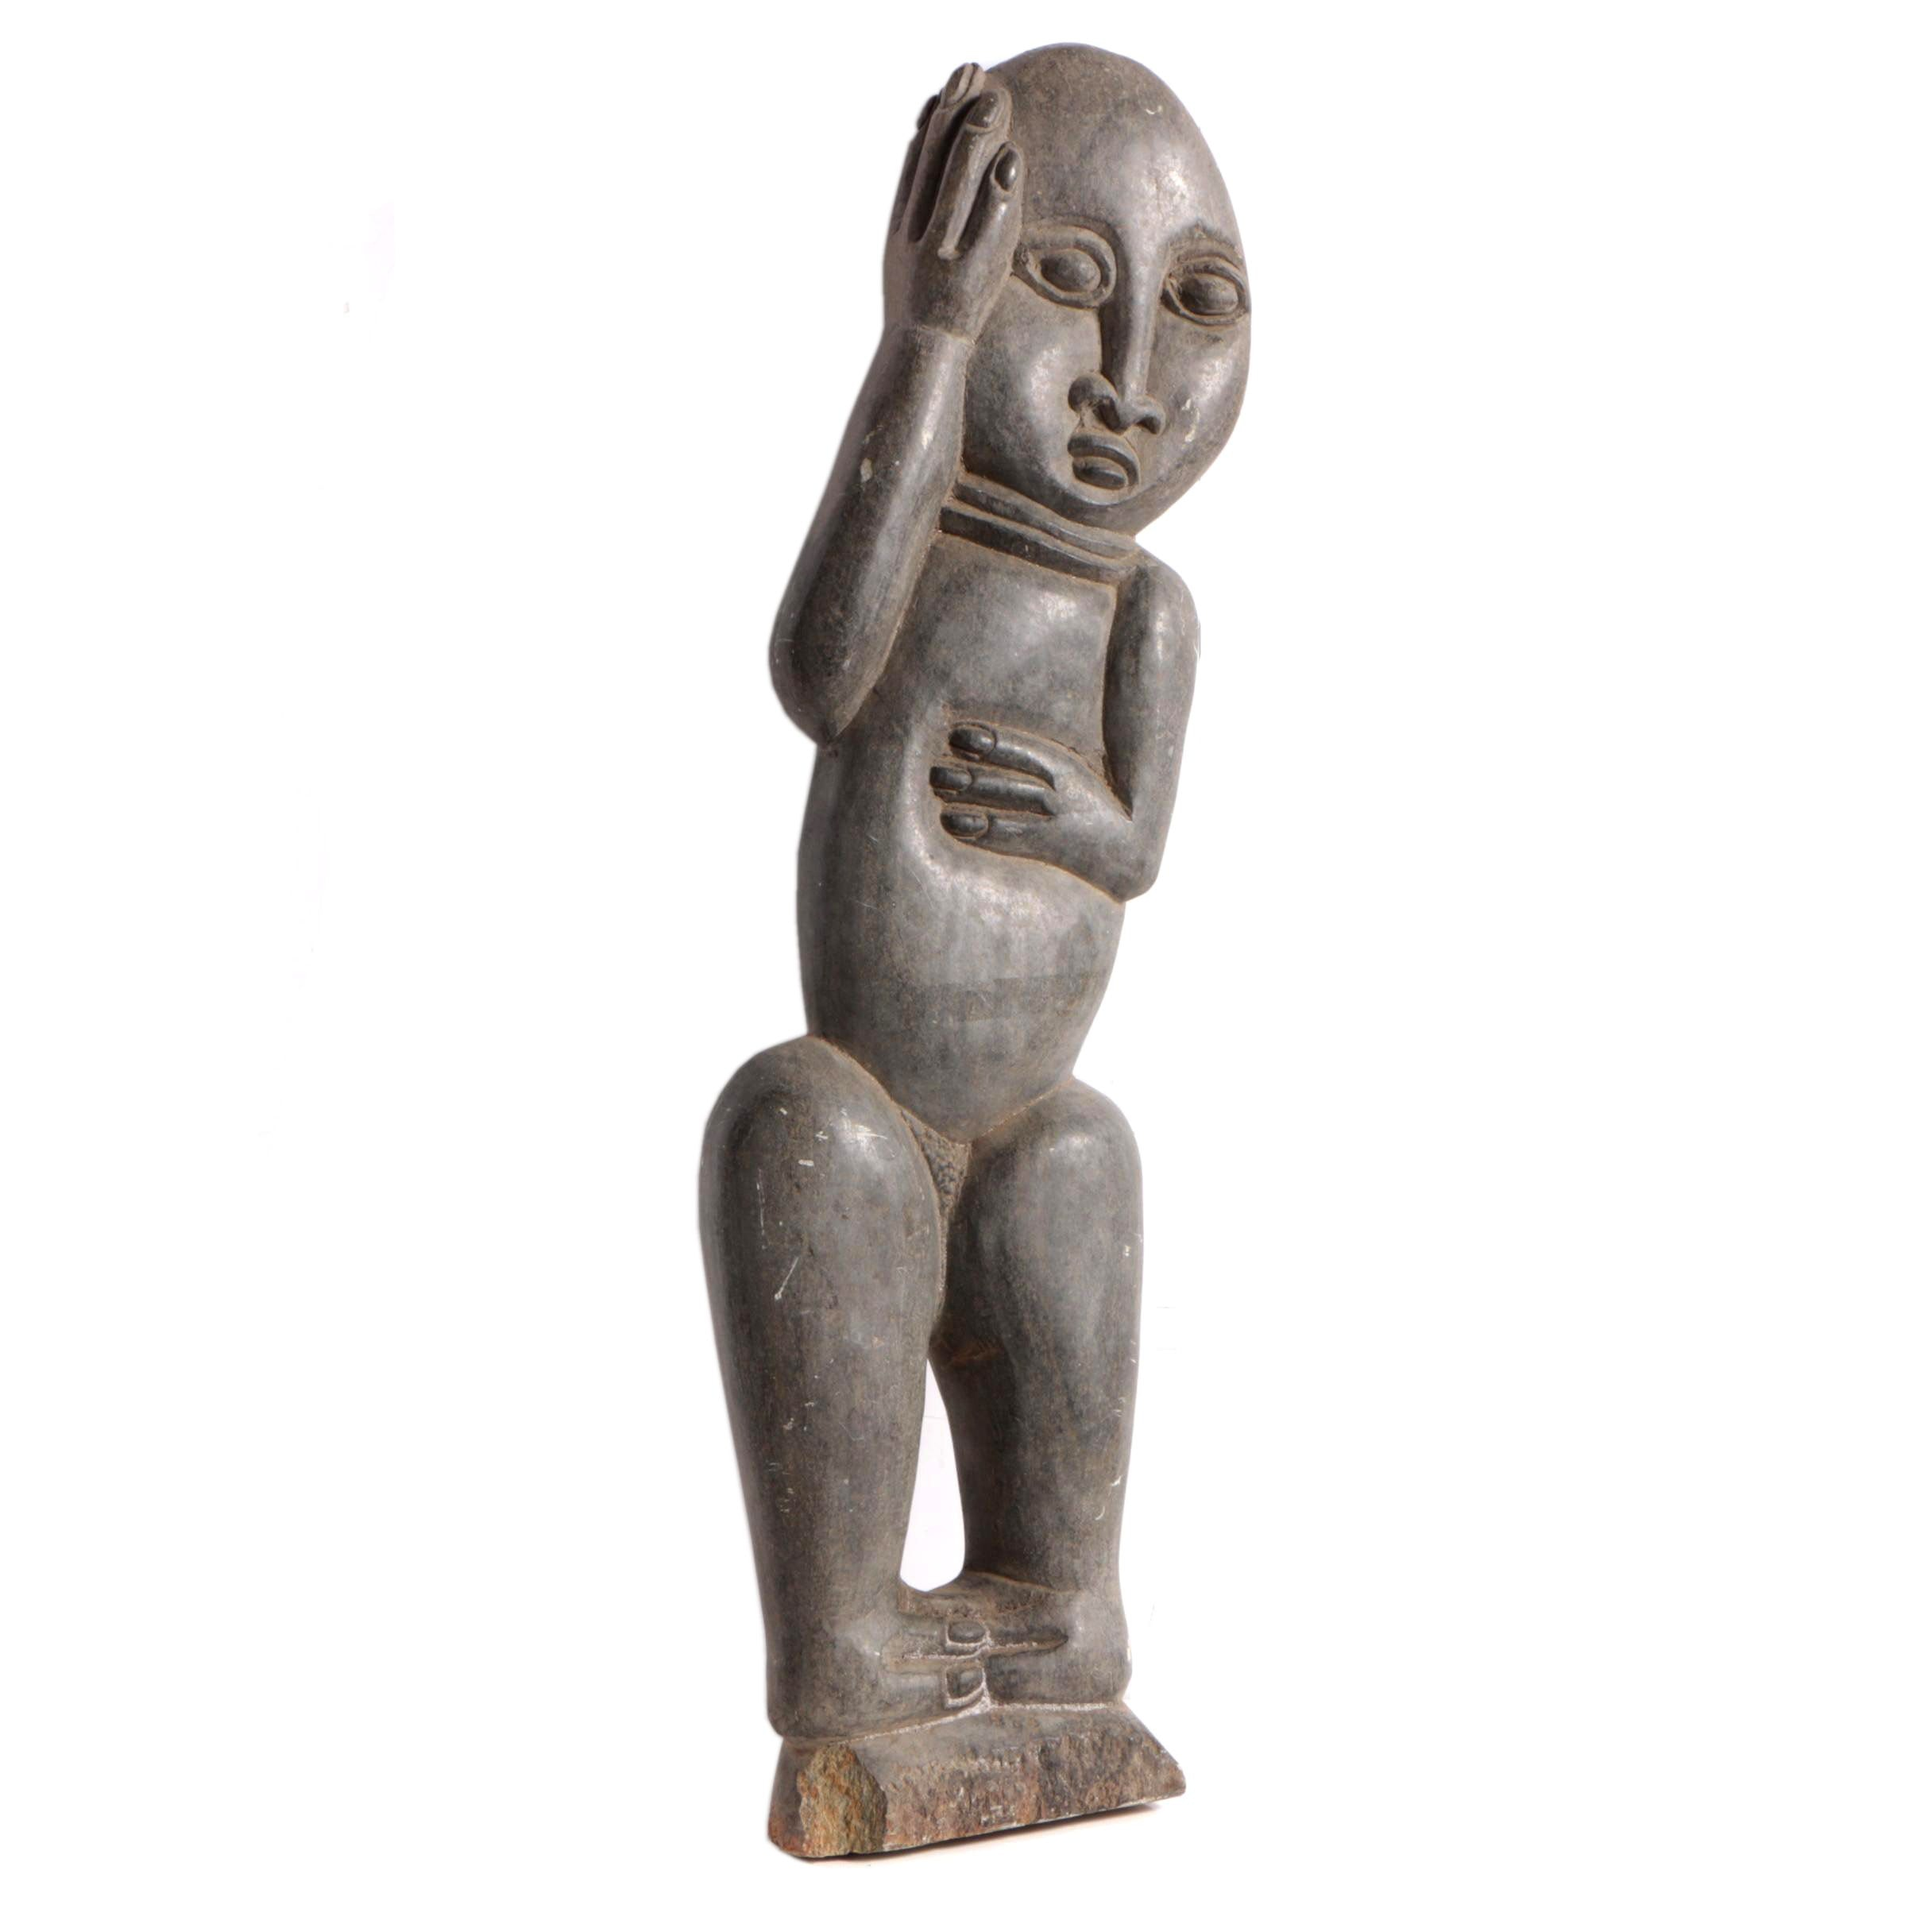 East African Style Carved Soapstone Figurative Sculpture